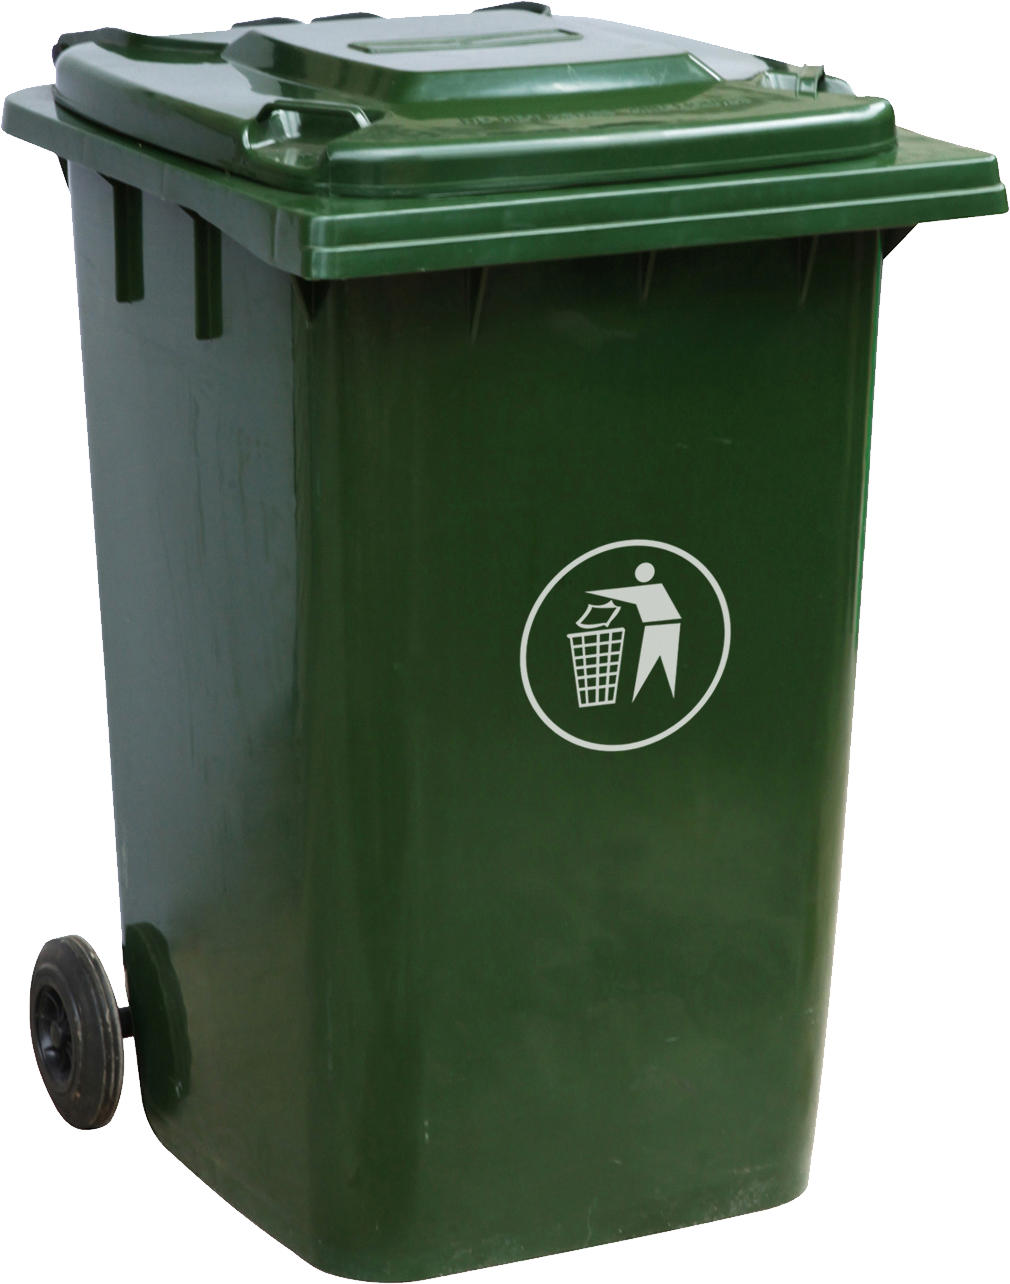 Trashcan basketball clipart clip royalty free library Trash can PNG | Transparent images | Pinterest clip royalty free library